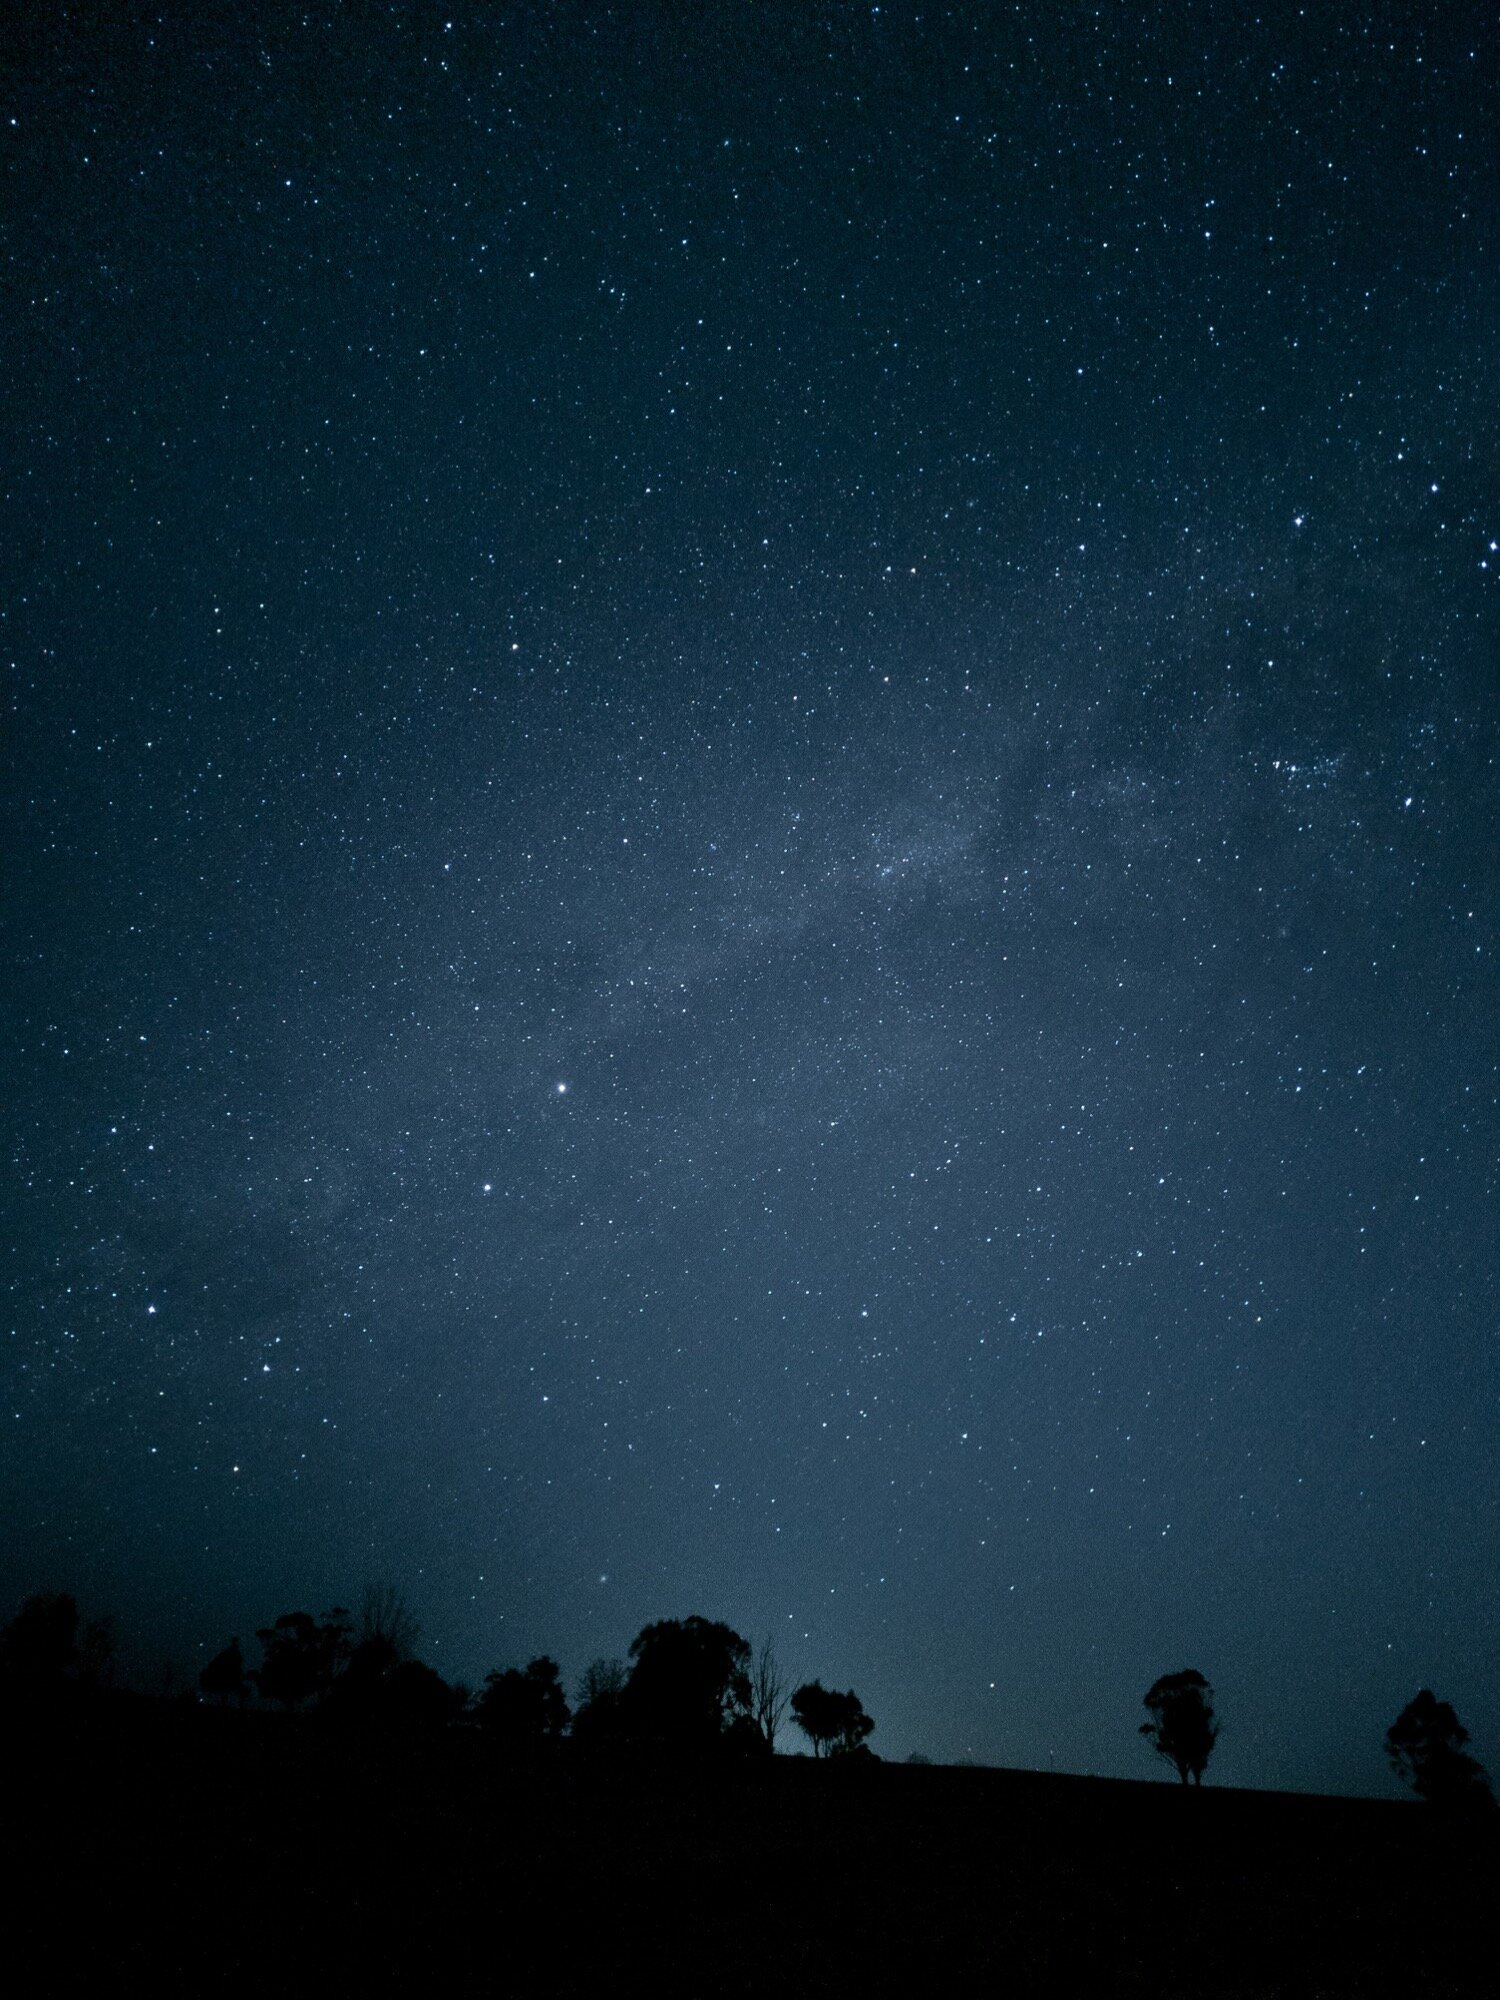 Night sight + Astrophotography Mode - 4 minute exposure DNG edited in Lightroom Mobile